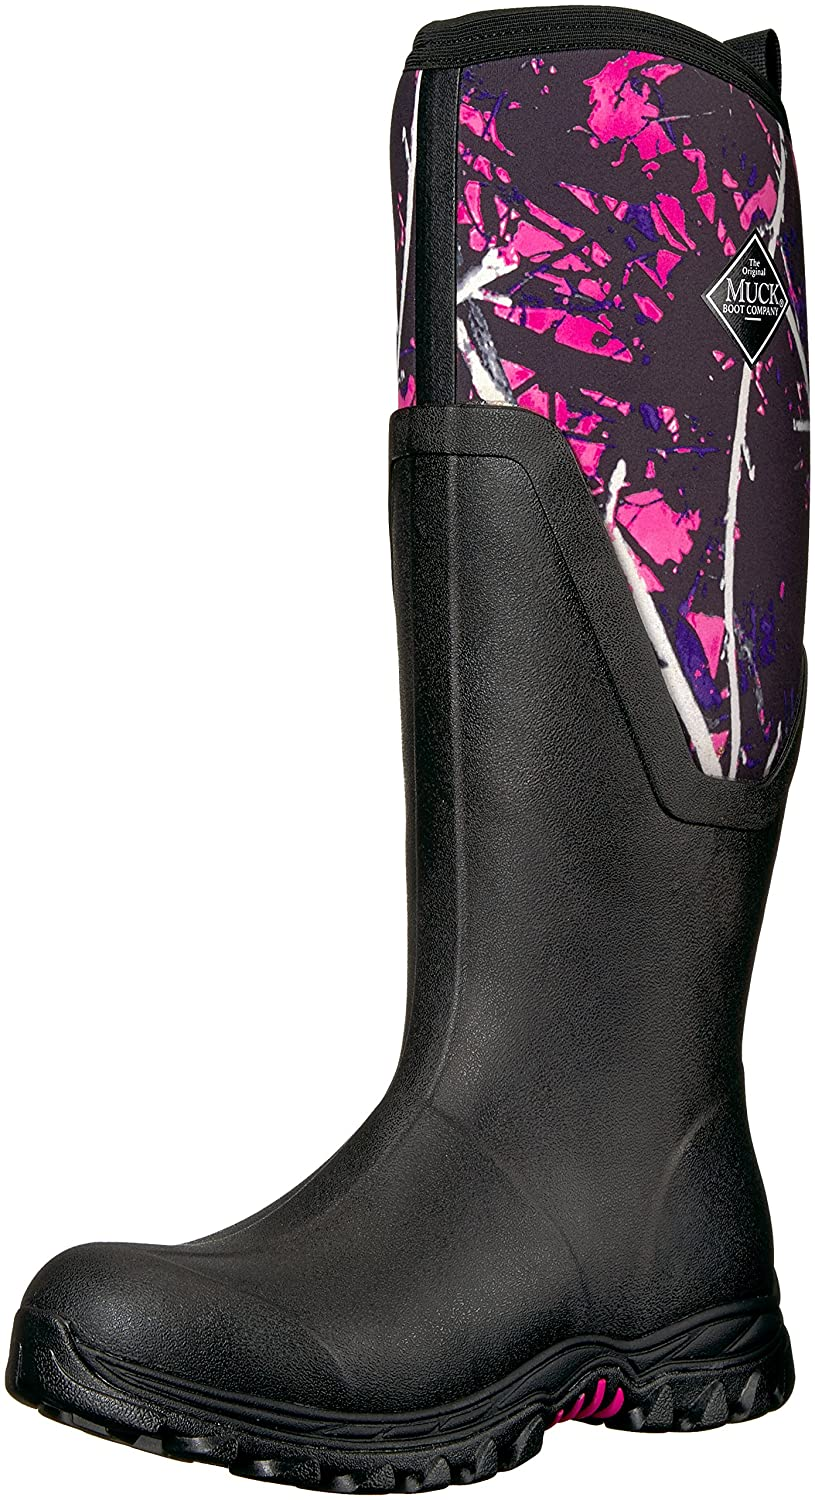 Muck Boot Women's Arctic Sport II Tall Snow B0725YKNS6 8 B(M) US|Black / Muddy Girl